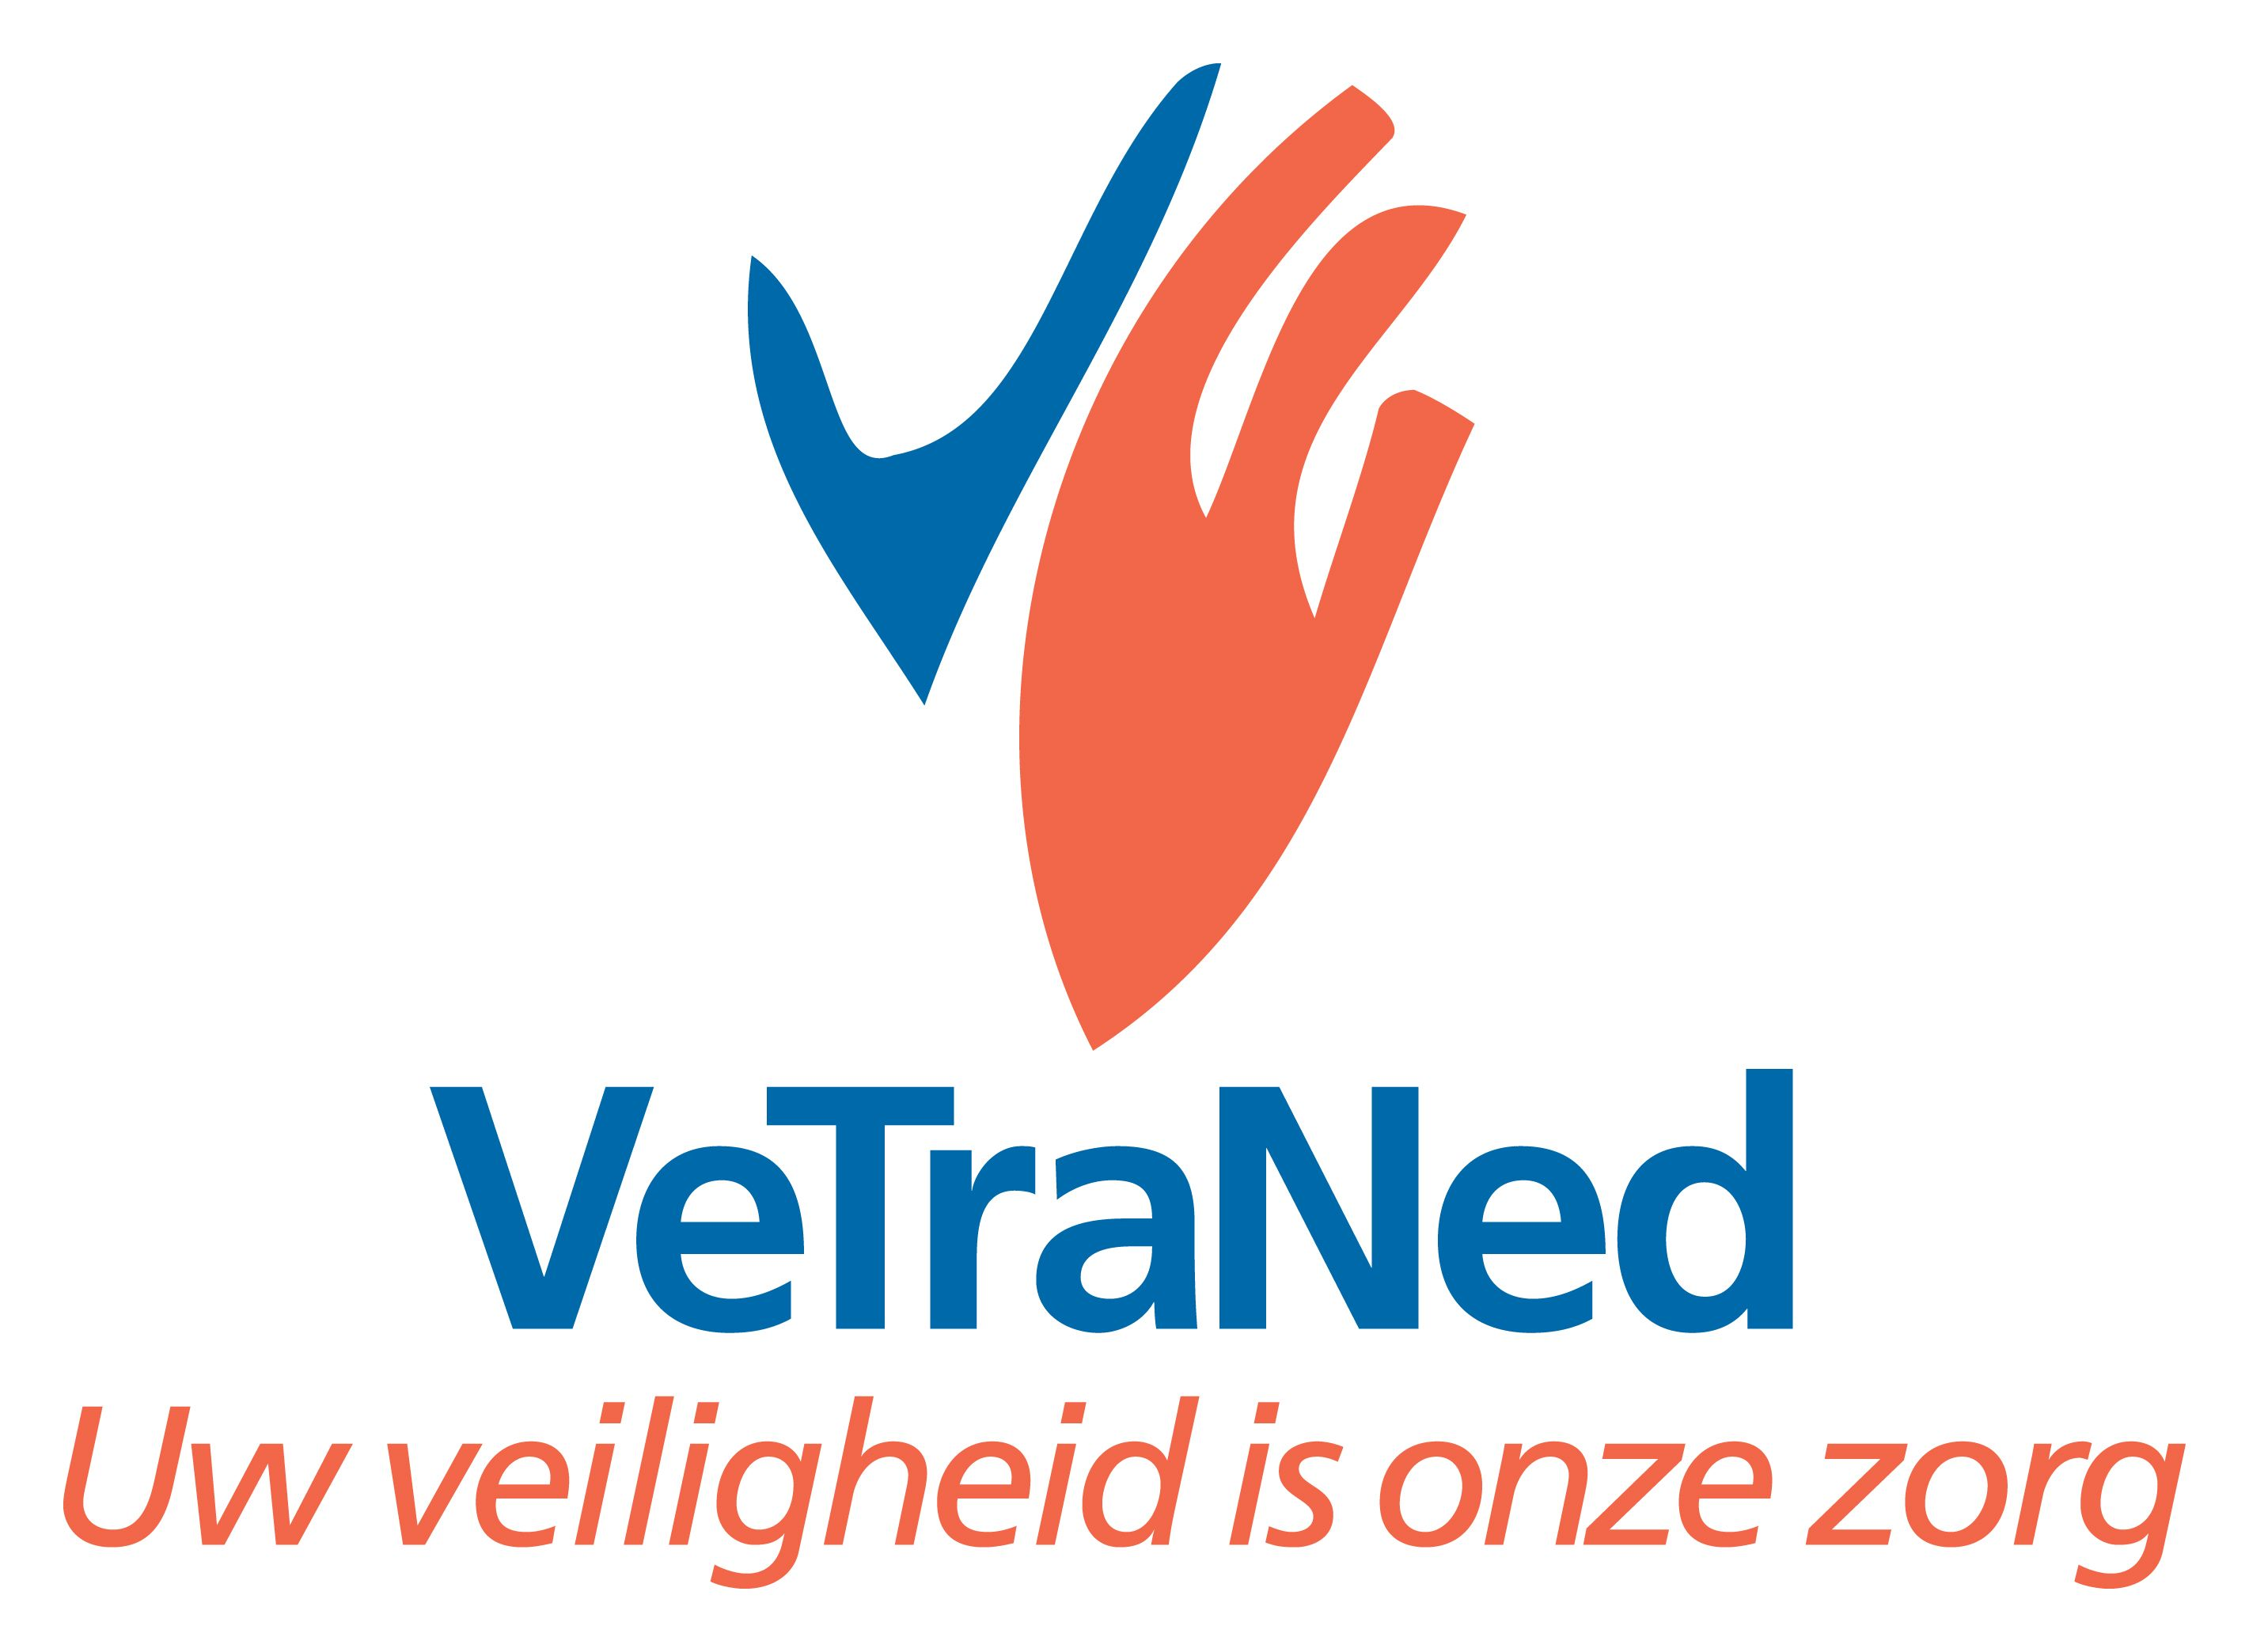 vetraned-logo20met20slogan1